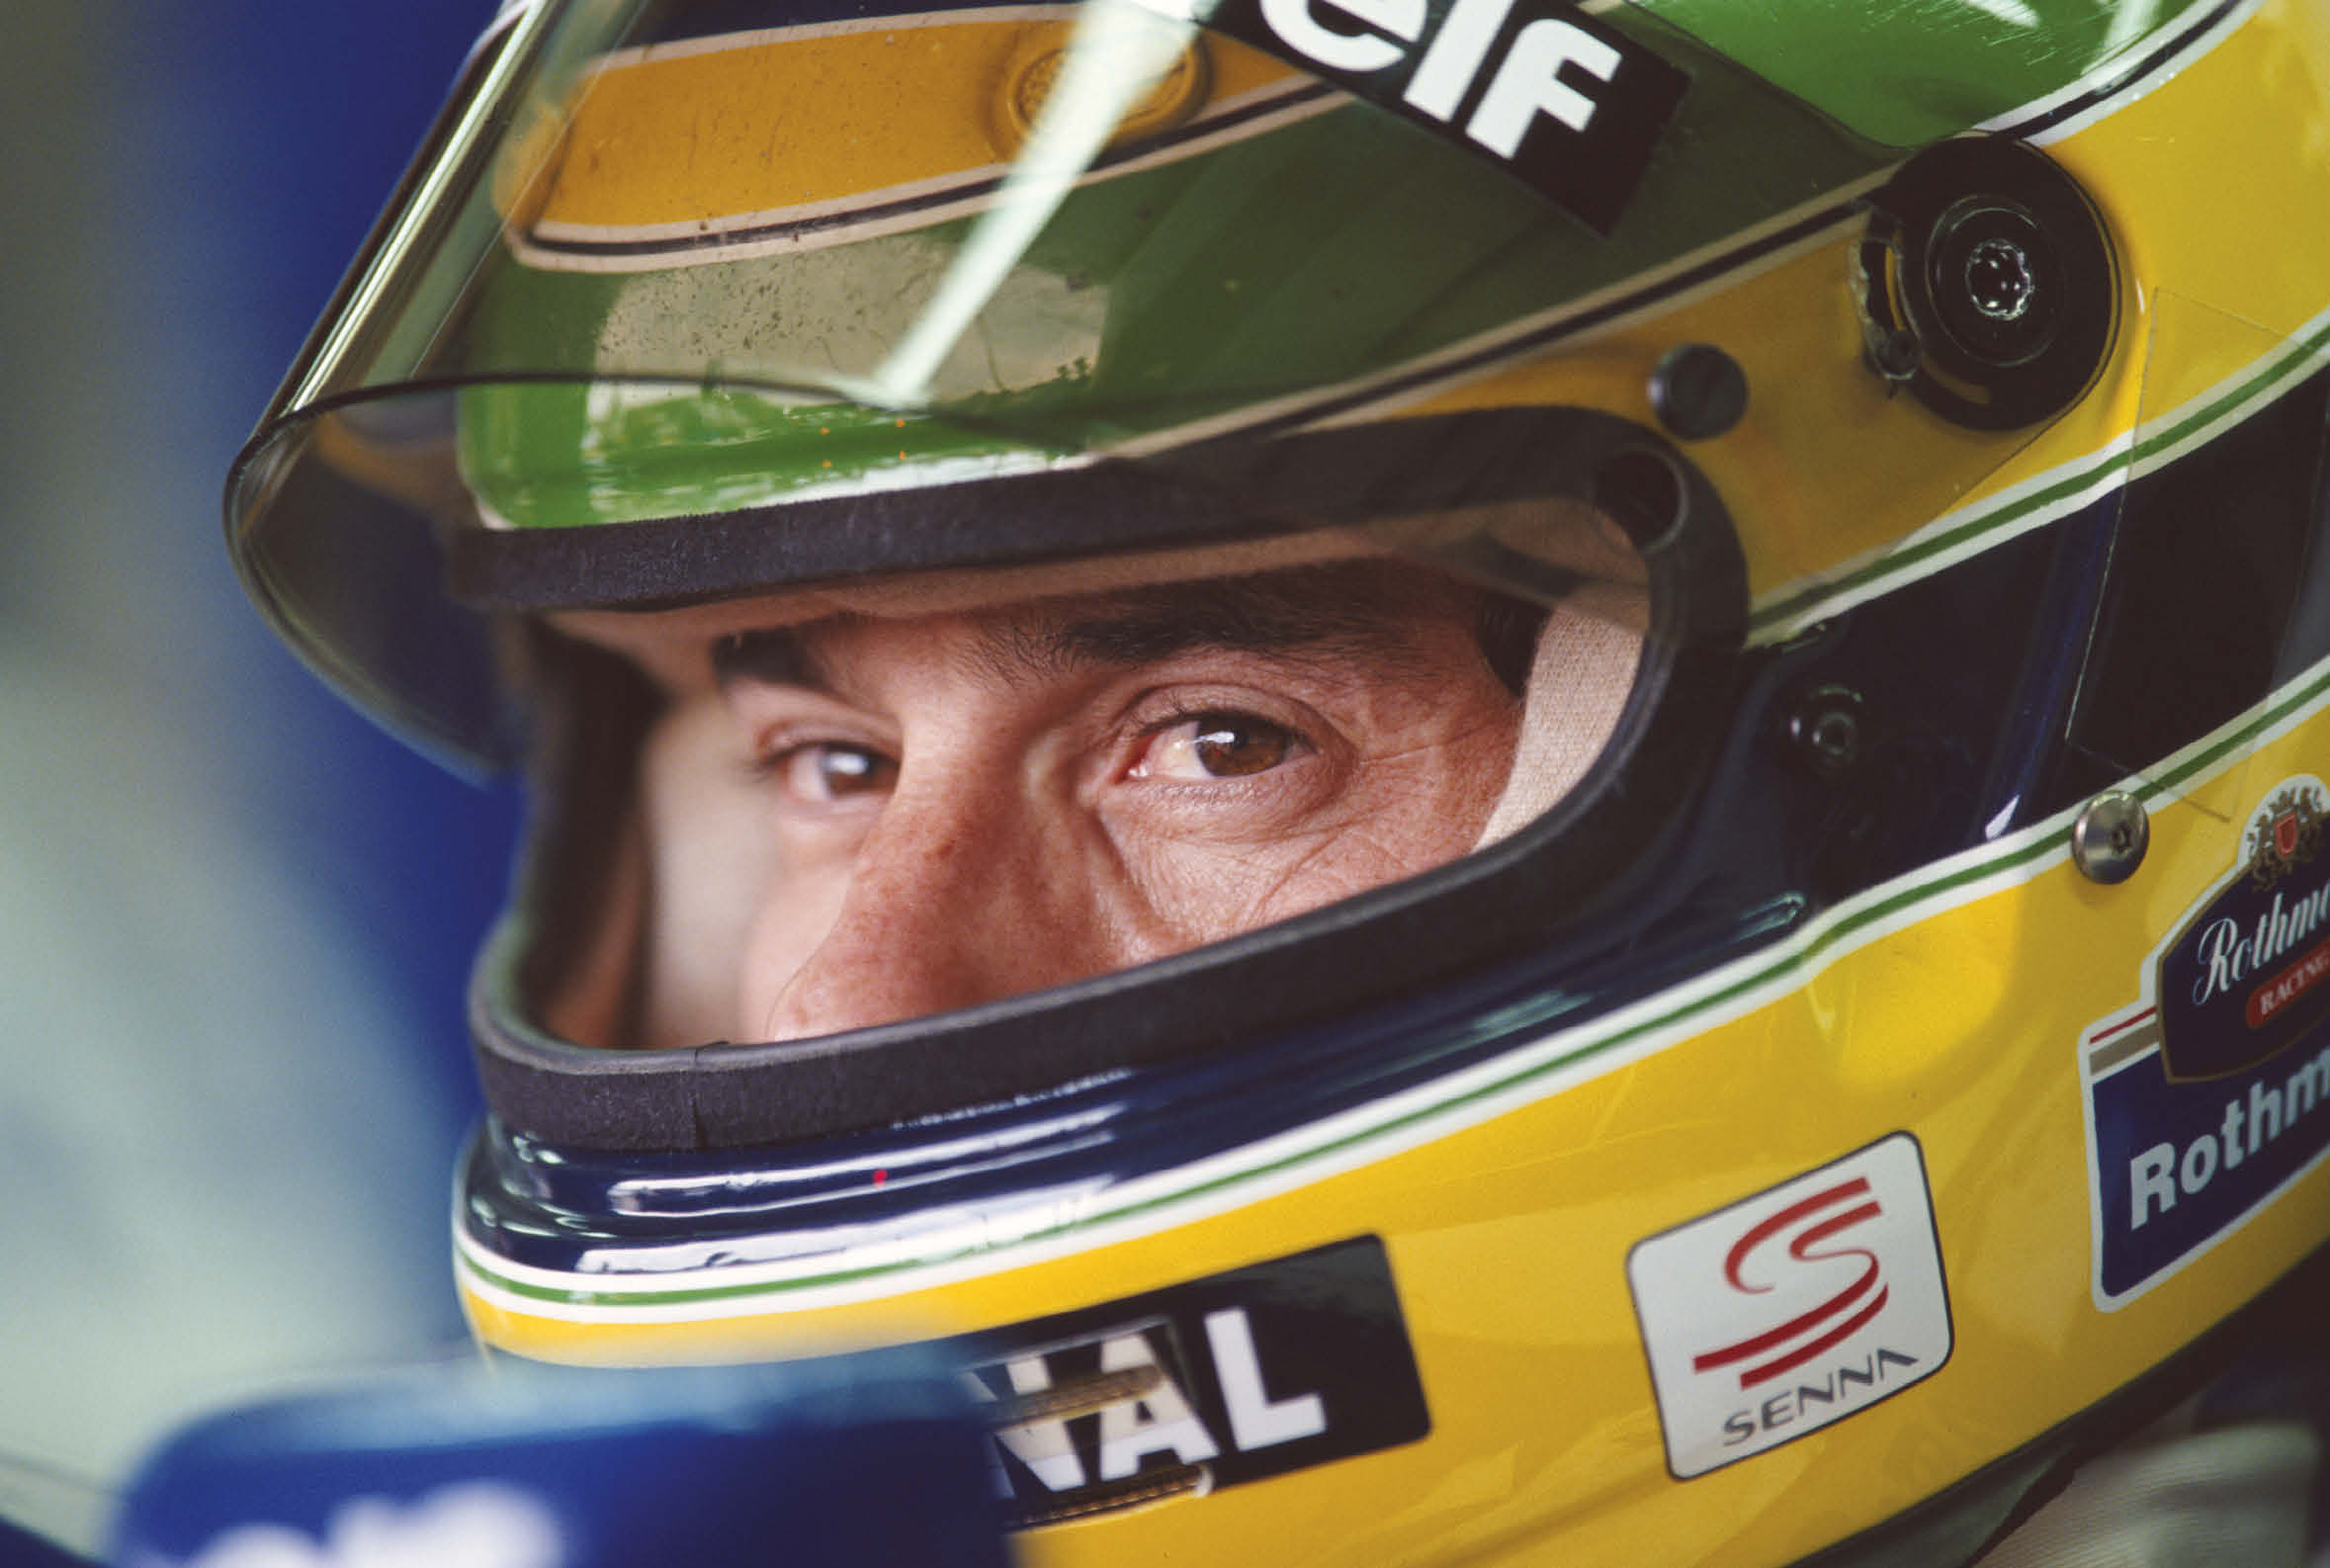 Premonitions that the race was doomed plagued Senna, but he opted to race on. The cause for his crash is still unclear